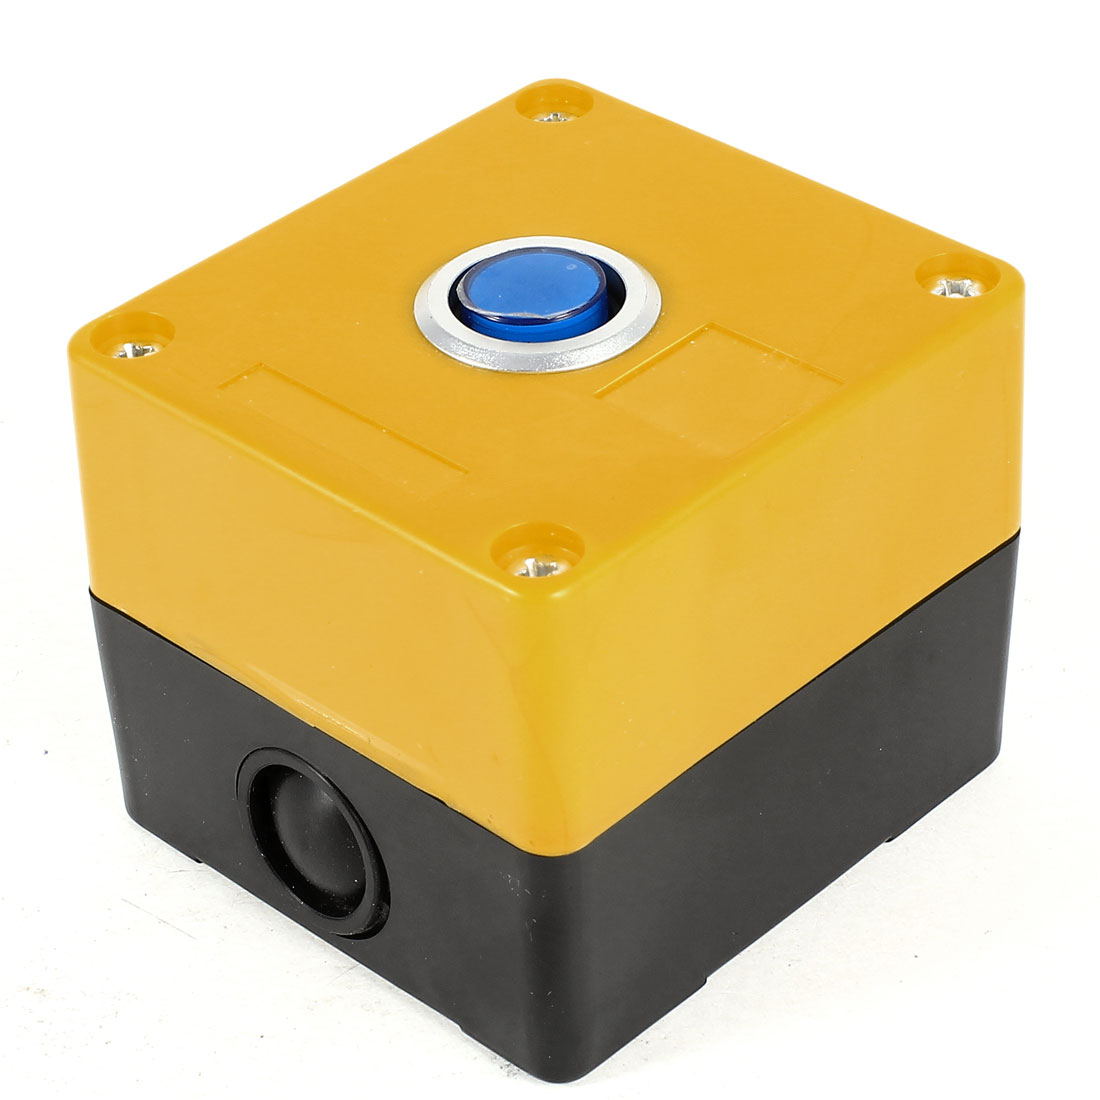 AC 220V 5A Blue Round Button SPDT 1NO 1NC 3 Pins Soldering Self-Locking Plastic Pushbutton Station Switch Control Box